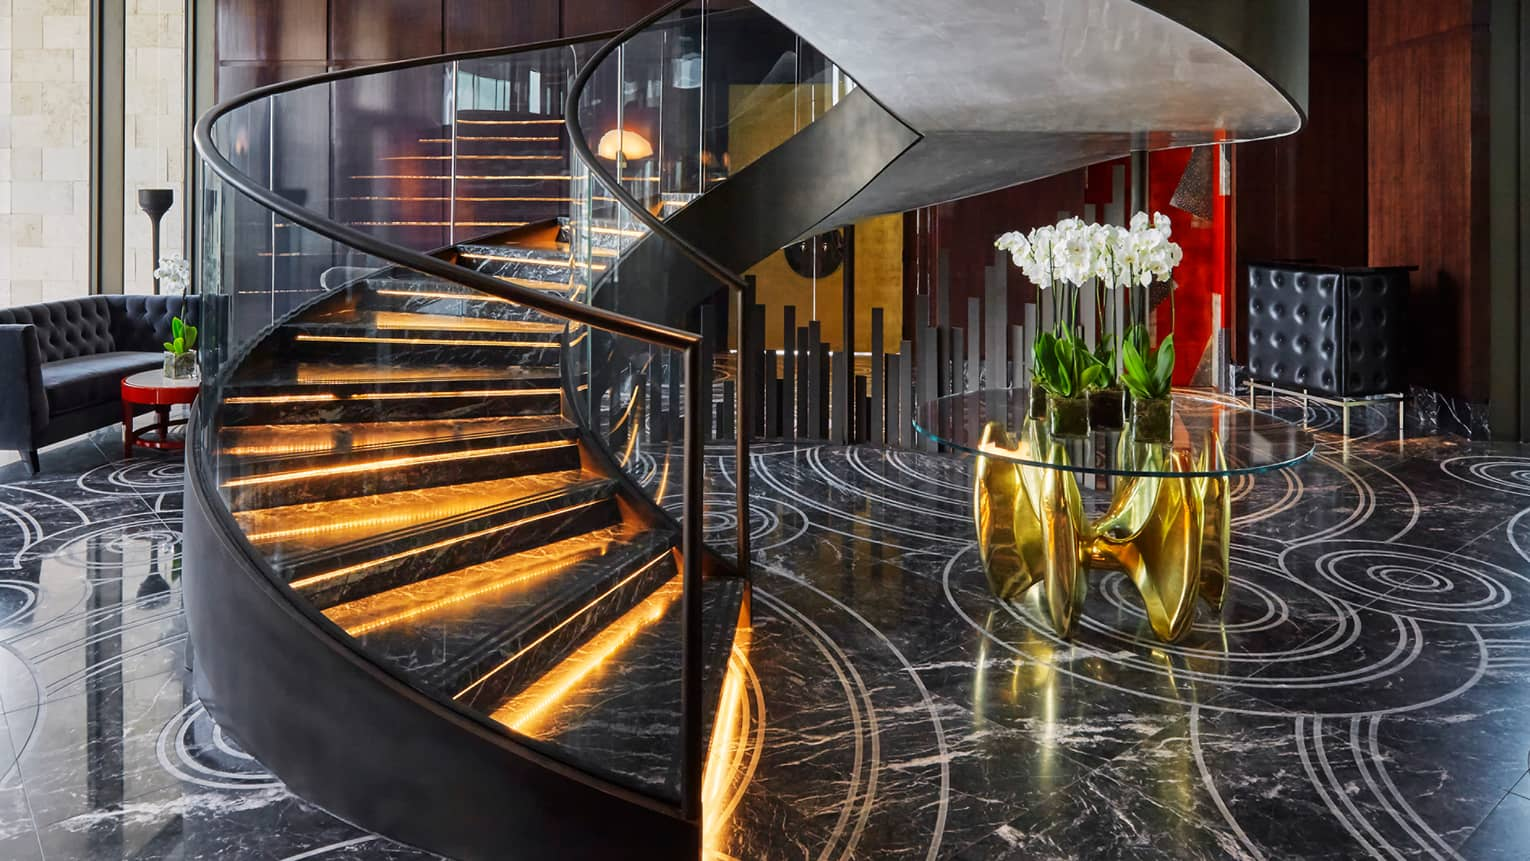 Spiral staircase with black marble steps with orange lights, glass railings, black marble lobby with flowers